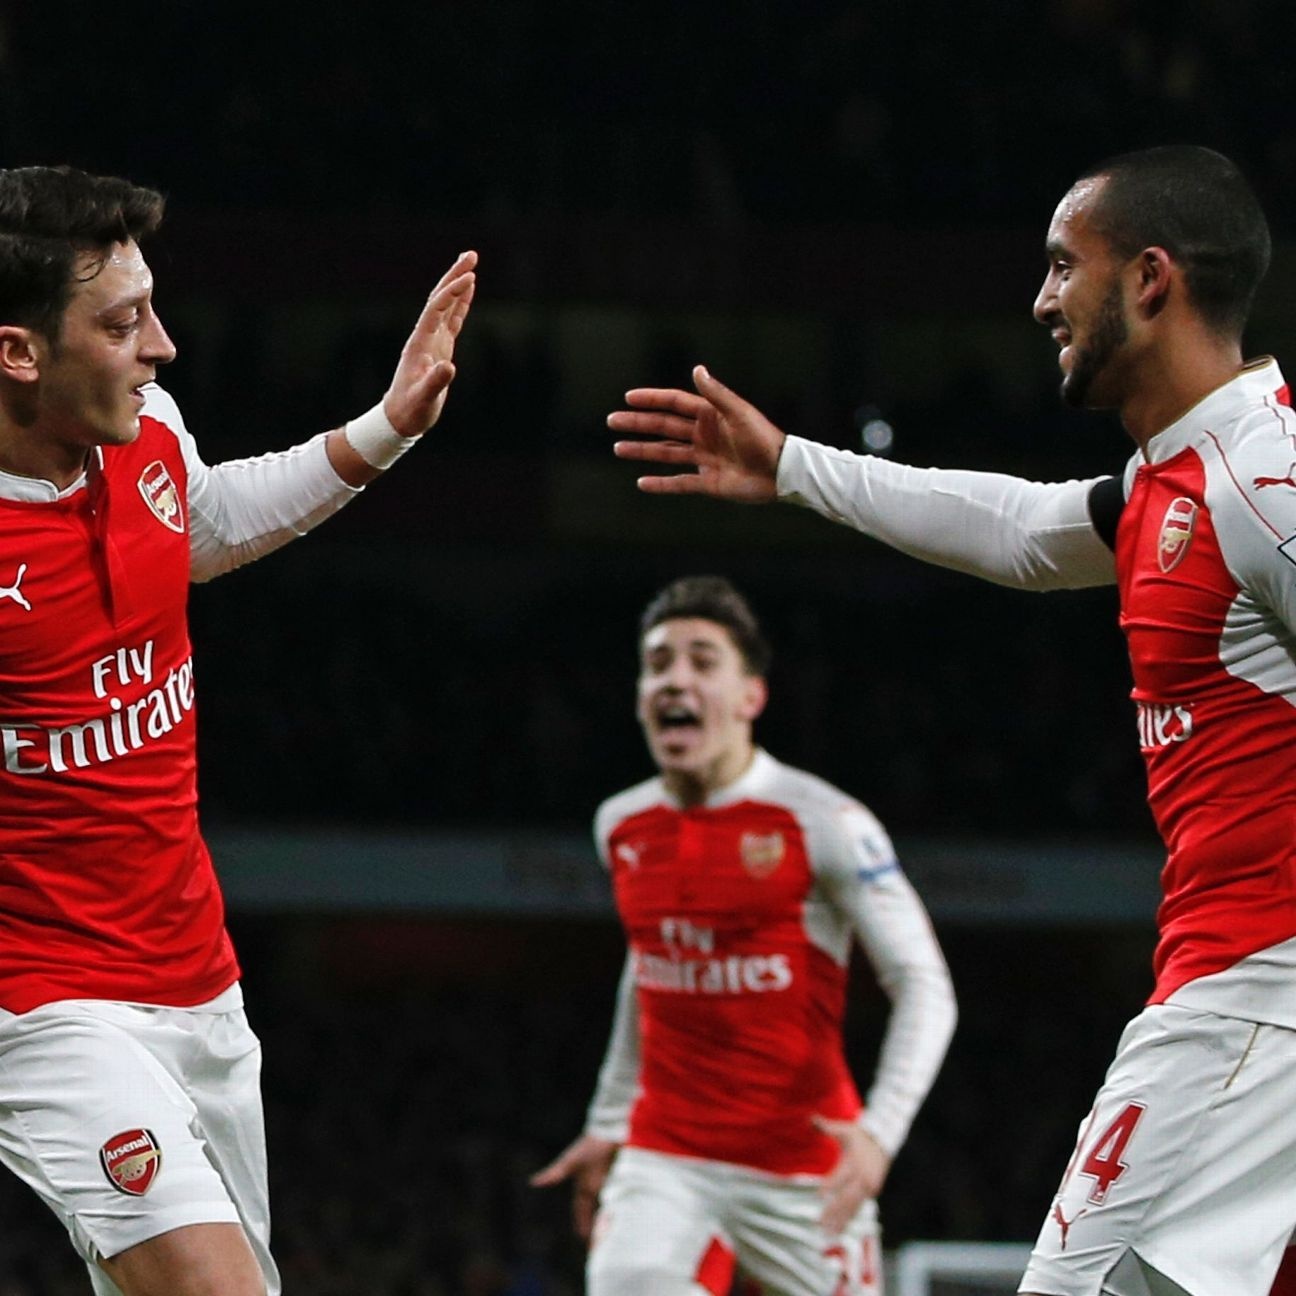 Epl Matches Live On Rcti Indonesia Tv Channel: Arsenal Partner Indonesian Bank Muamalat